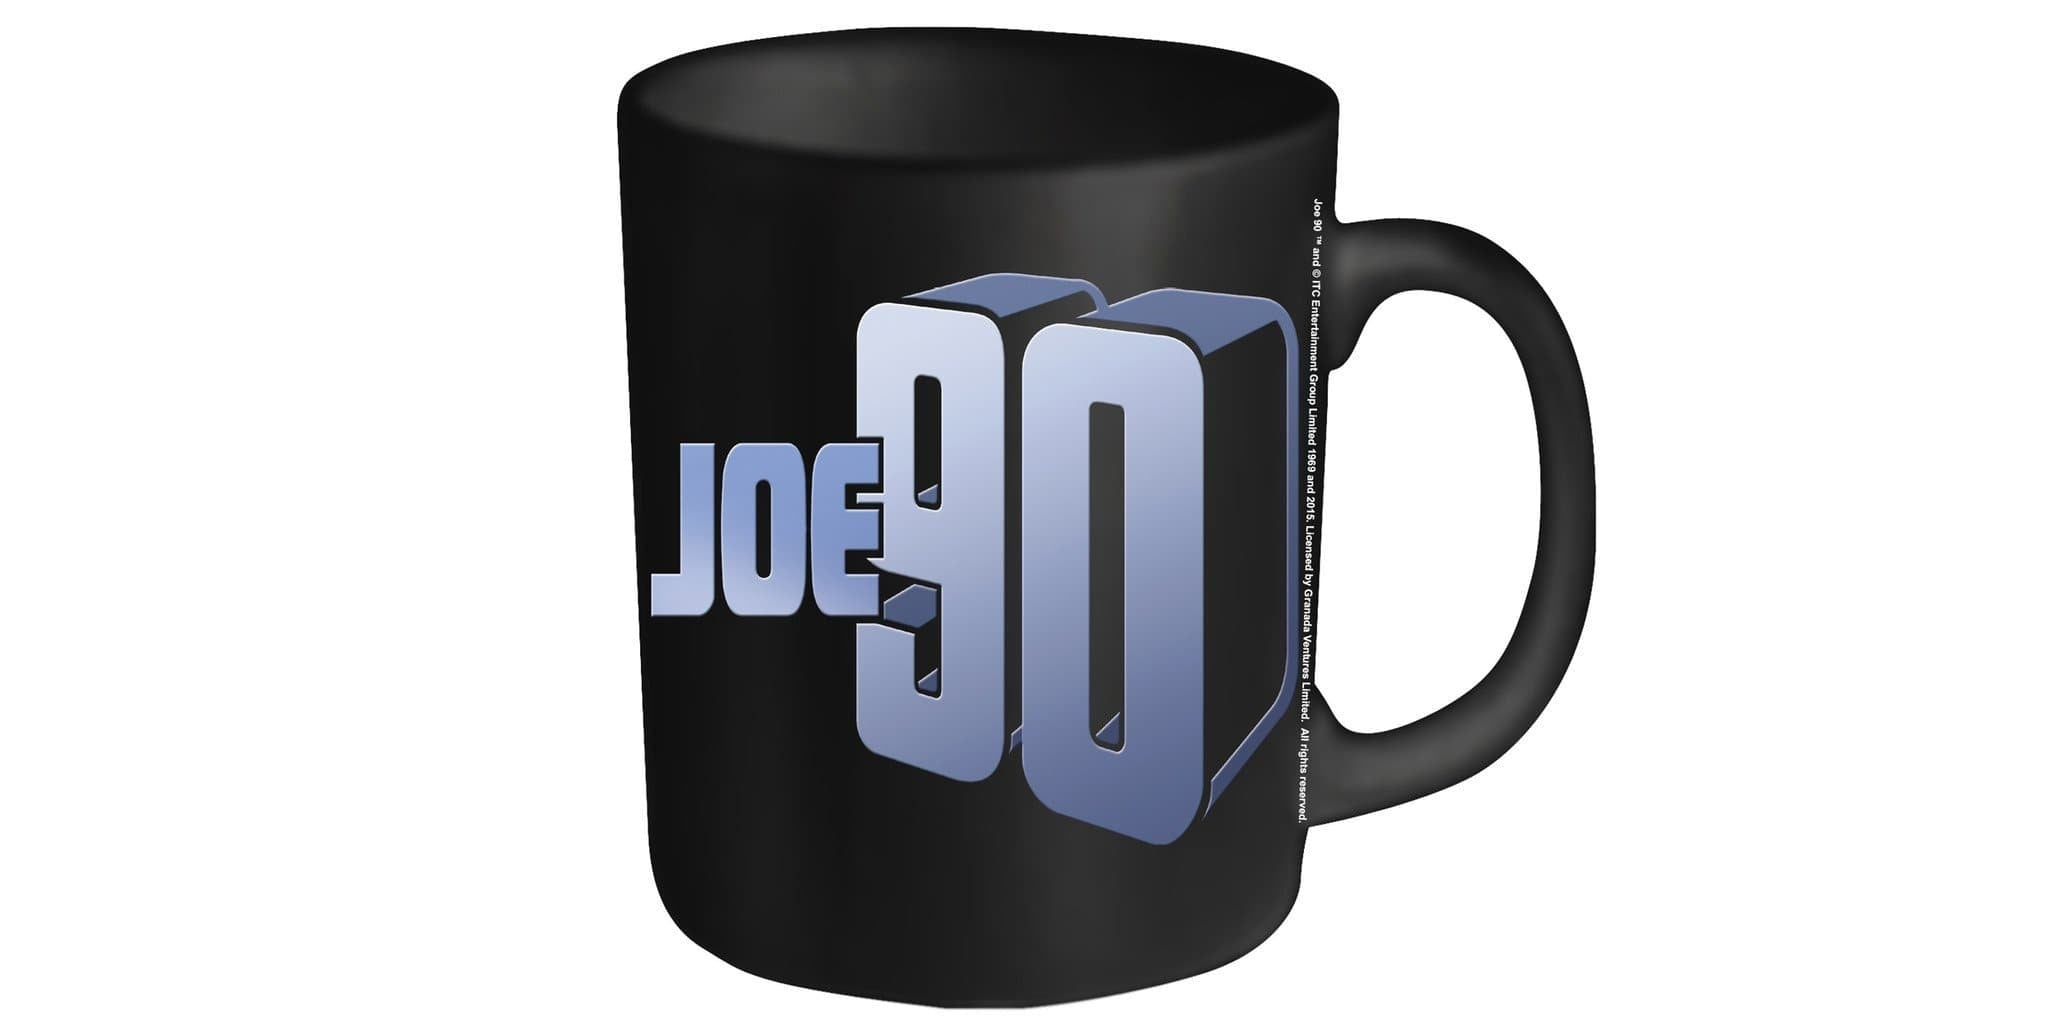 Joe 90 Logo Mug - The Gerry Anderson Store